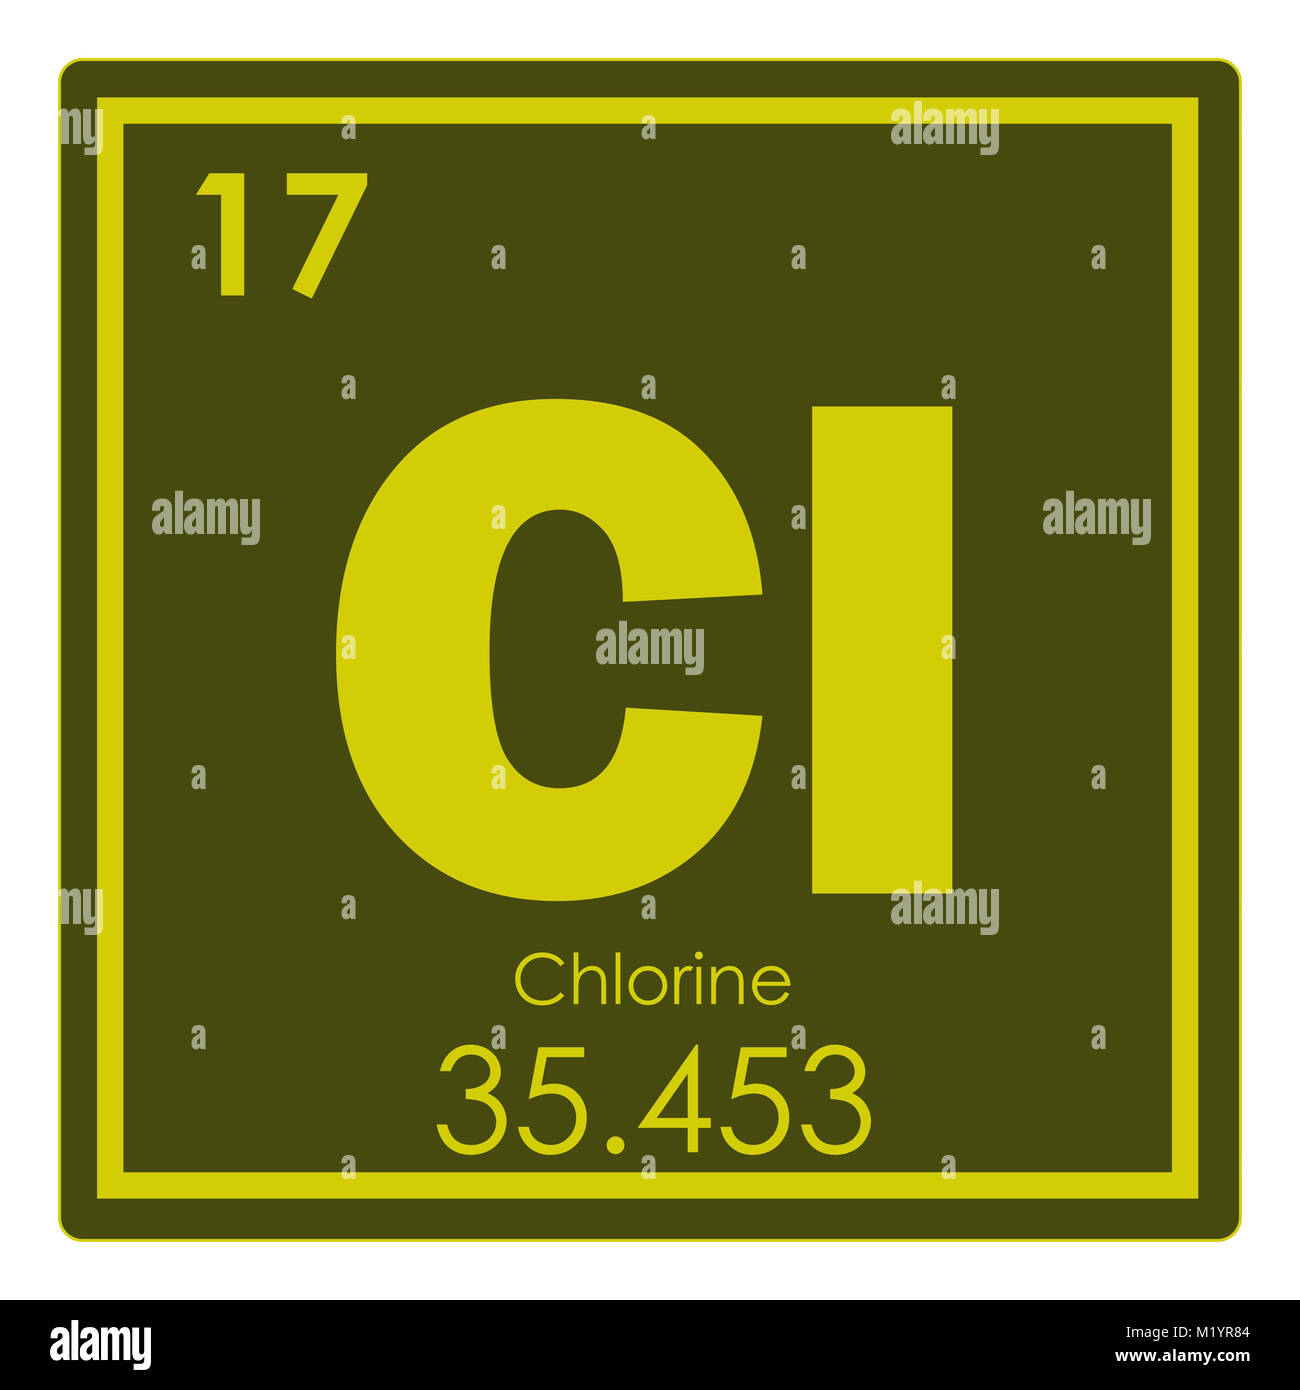 Chlorine chemical element periodic table science symbol stock photo chlorine chemical element periodic table science symbol urtaz Images